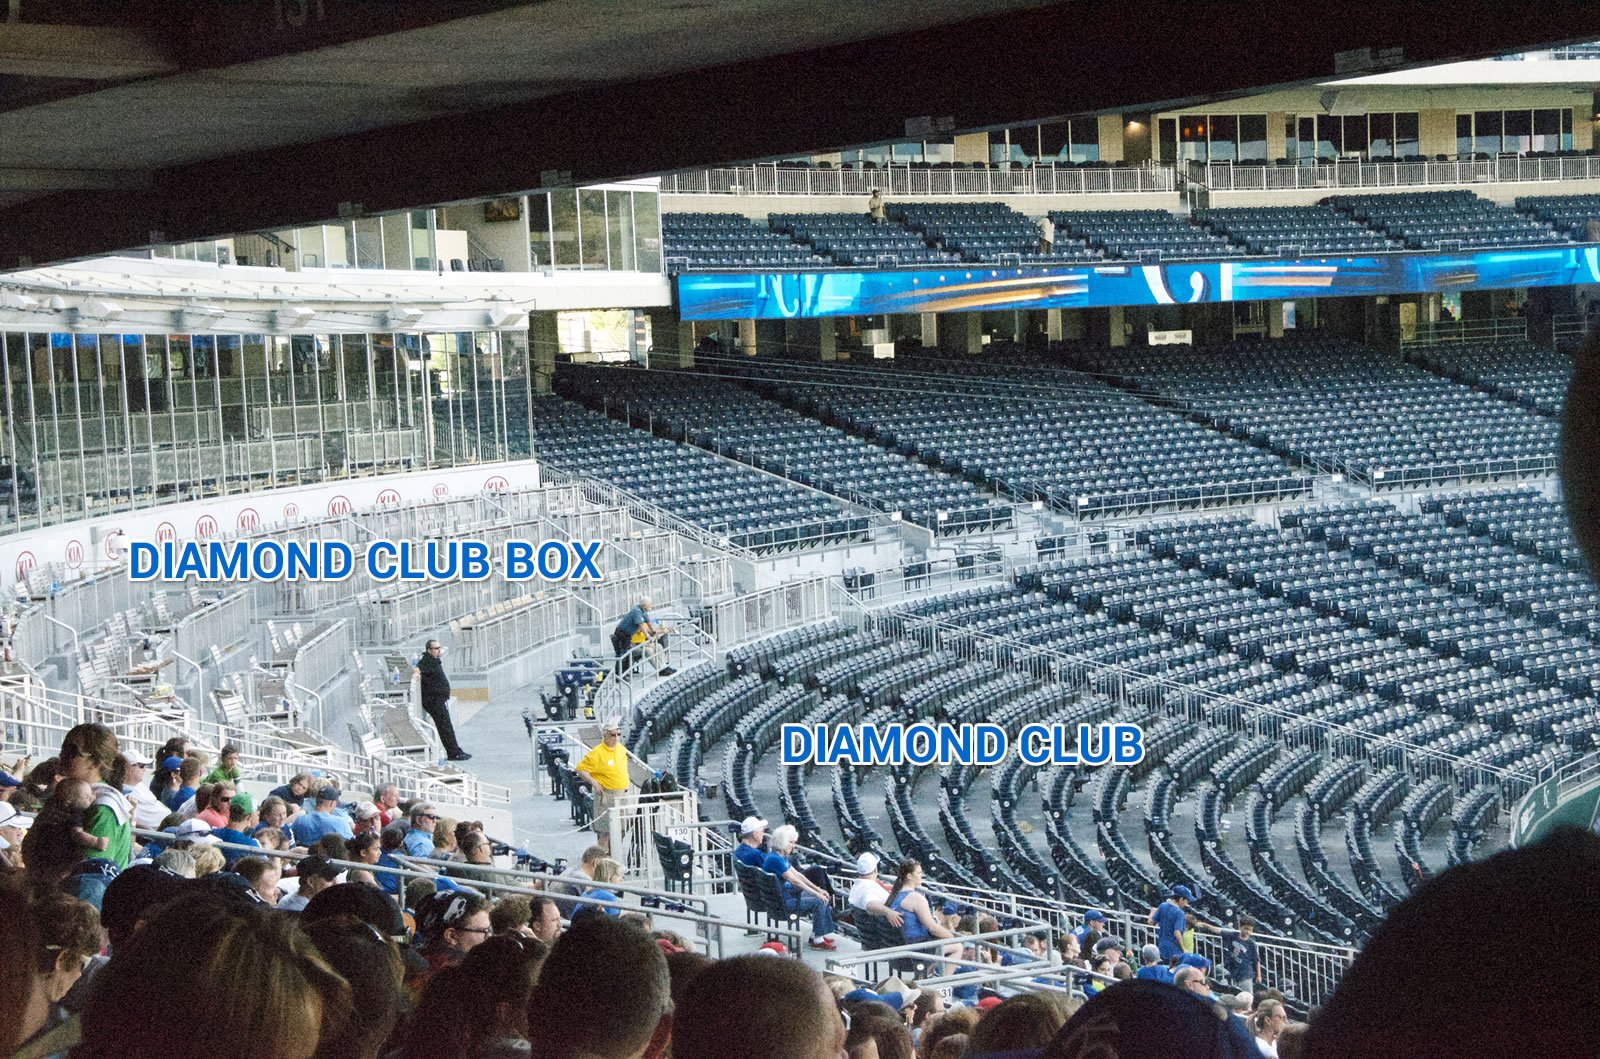 Diamond Club and Diamond Club Box Seating at Kauffman Stadium